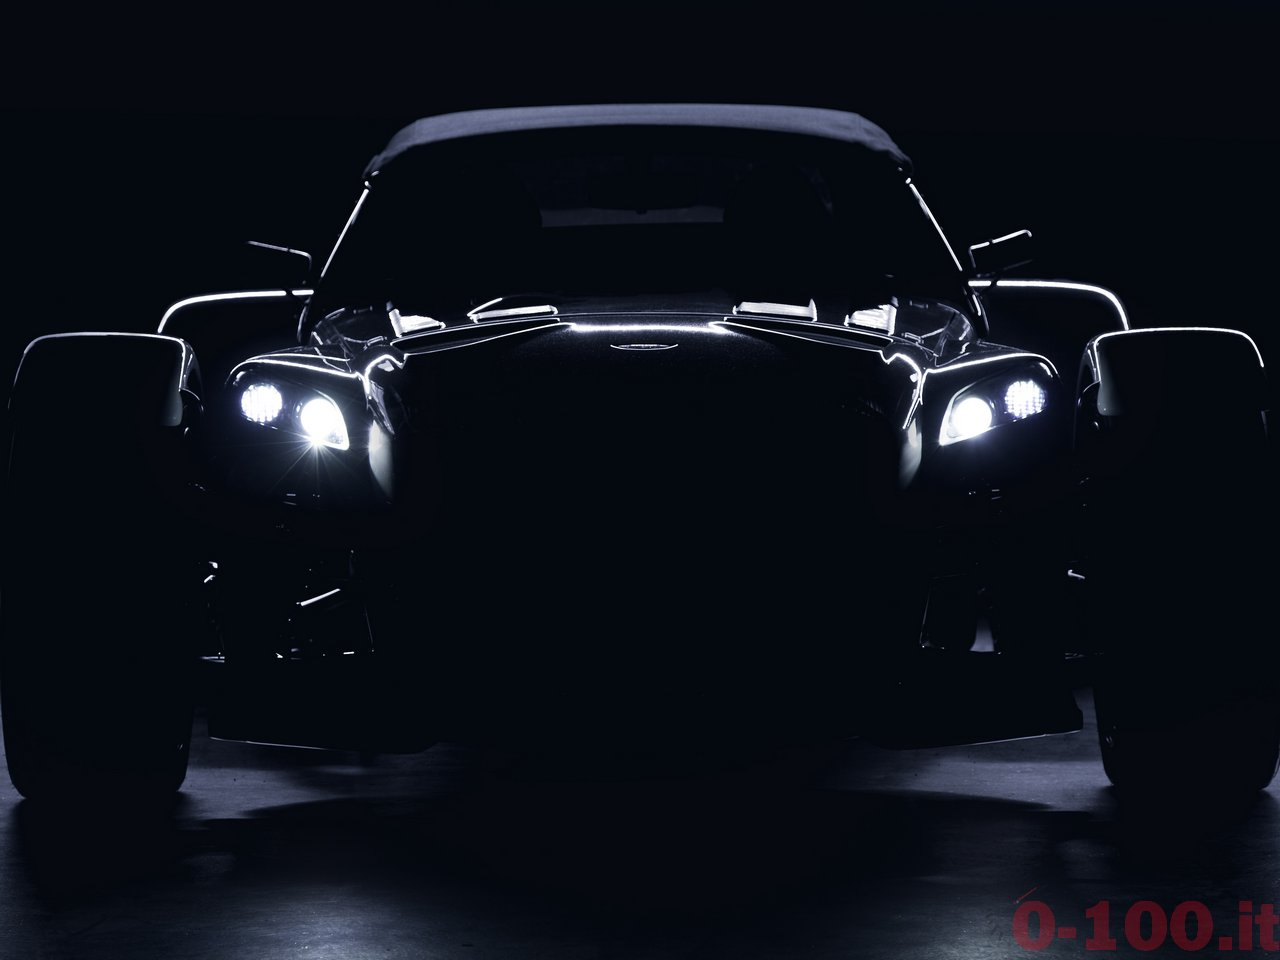 donkervoort-gto-bilster-berg-edition-il-teaser-ufficiale-0-100_1